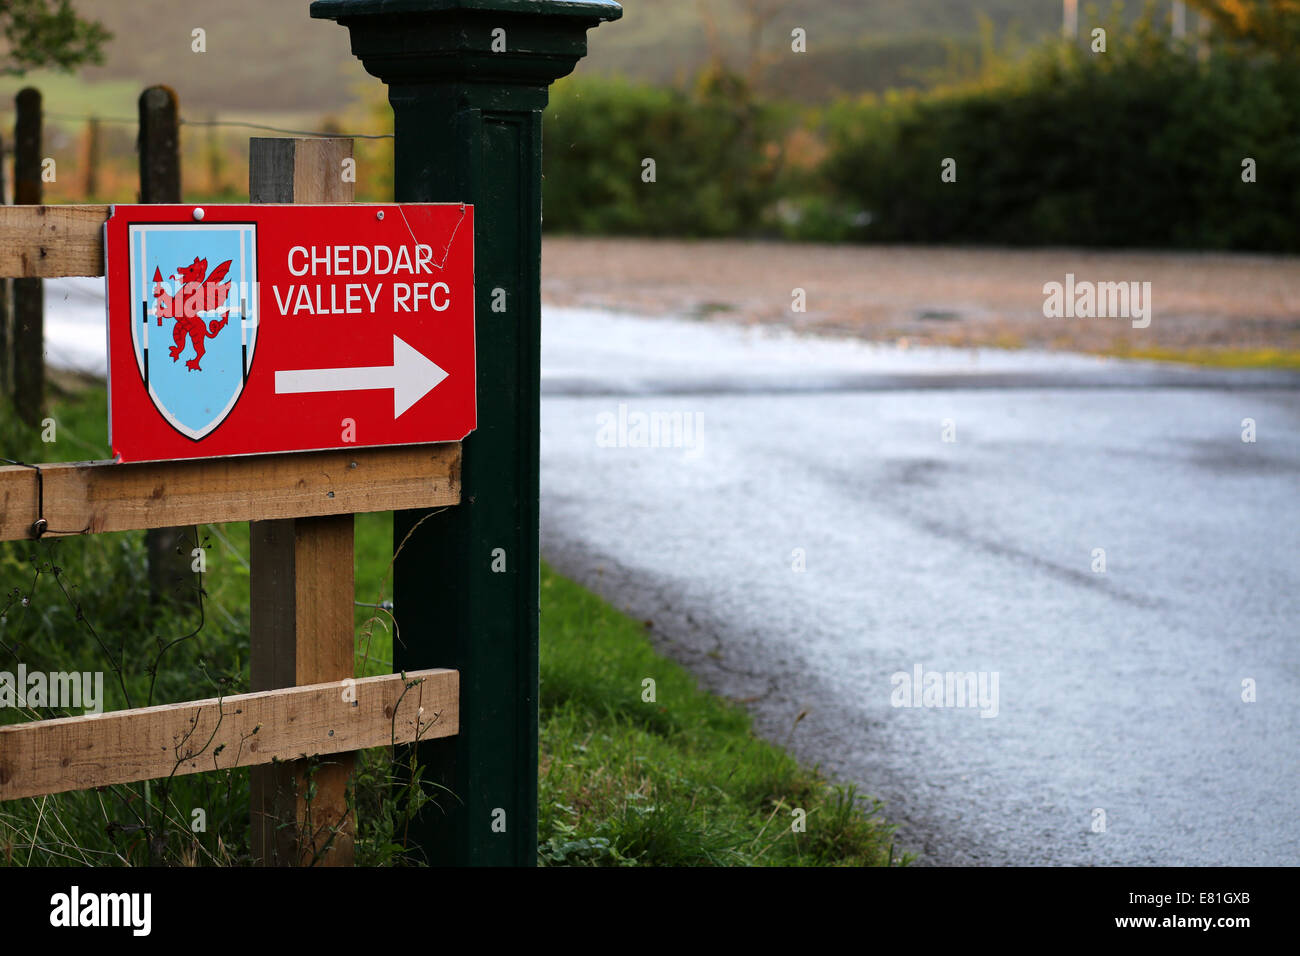 Direction sign with arrow into the Cheddar Valley Rugby RFC Club car park, 14th August 2014 - Stock Image